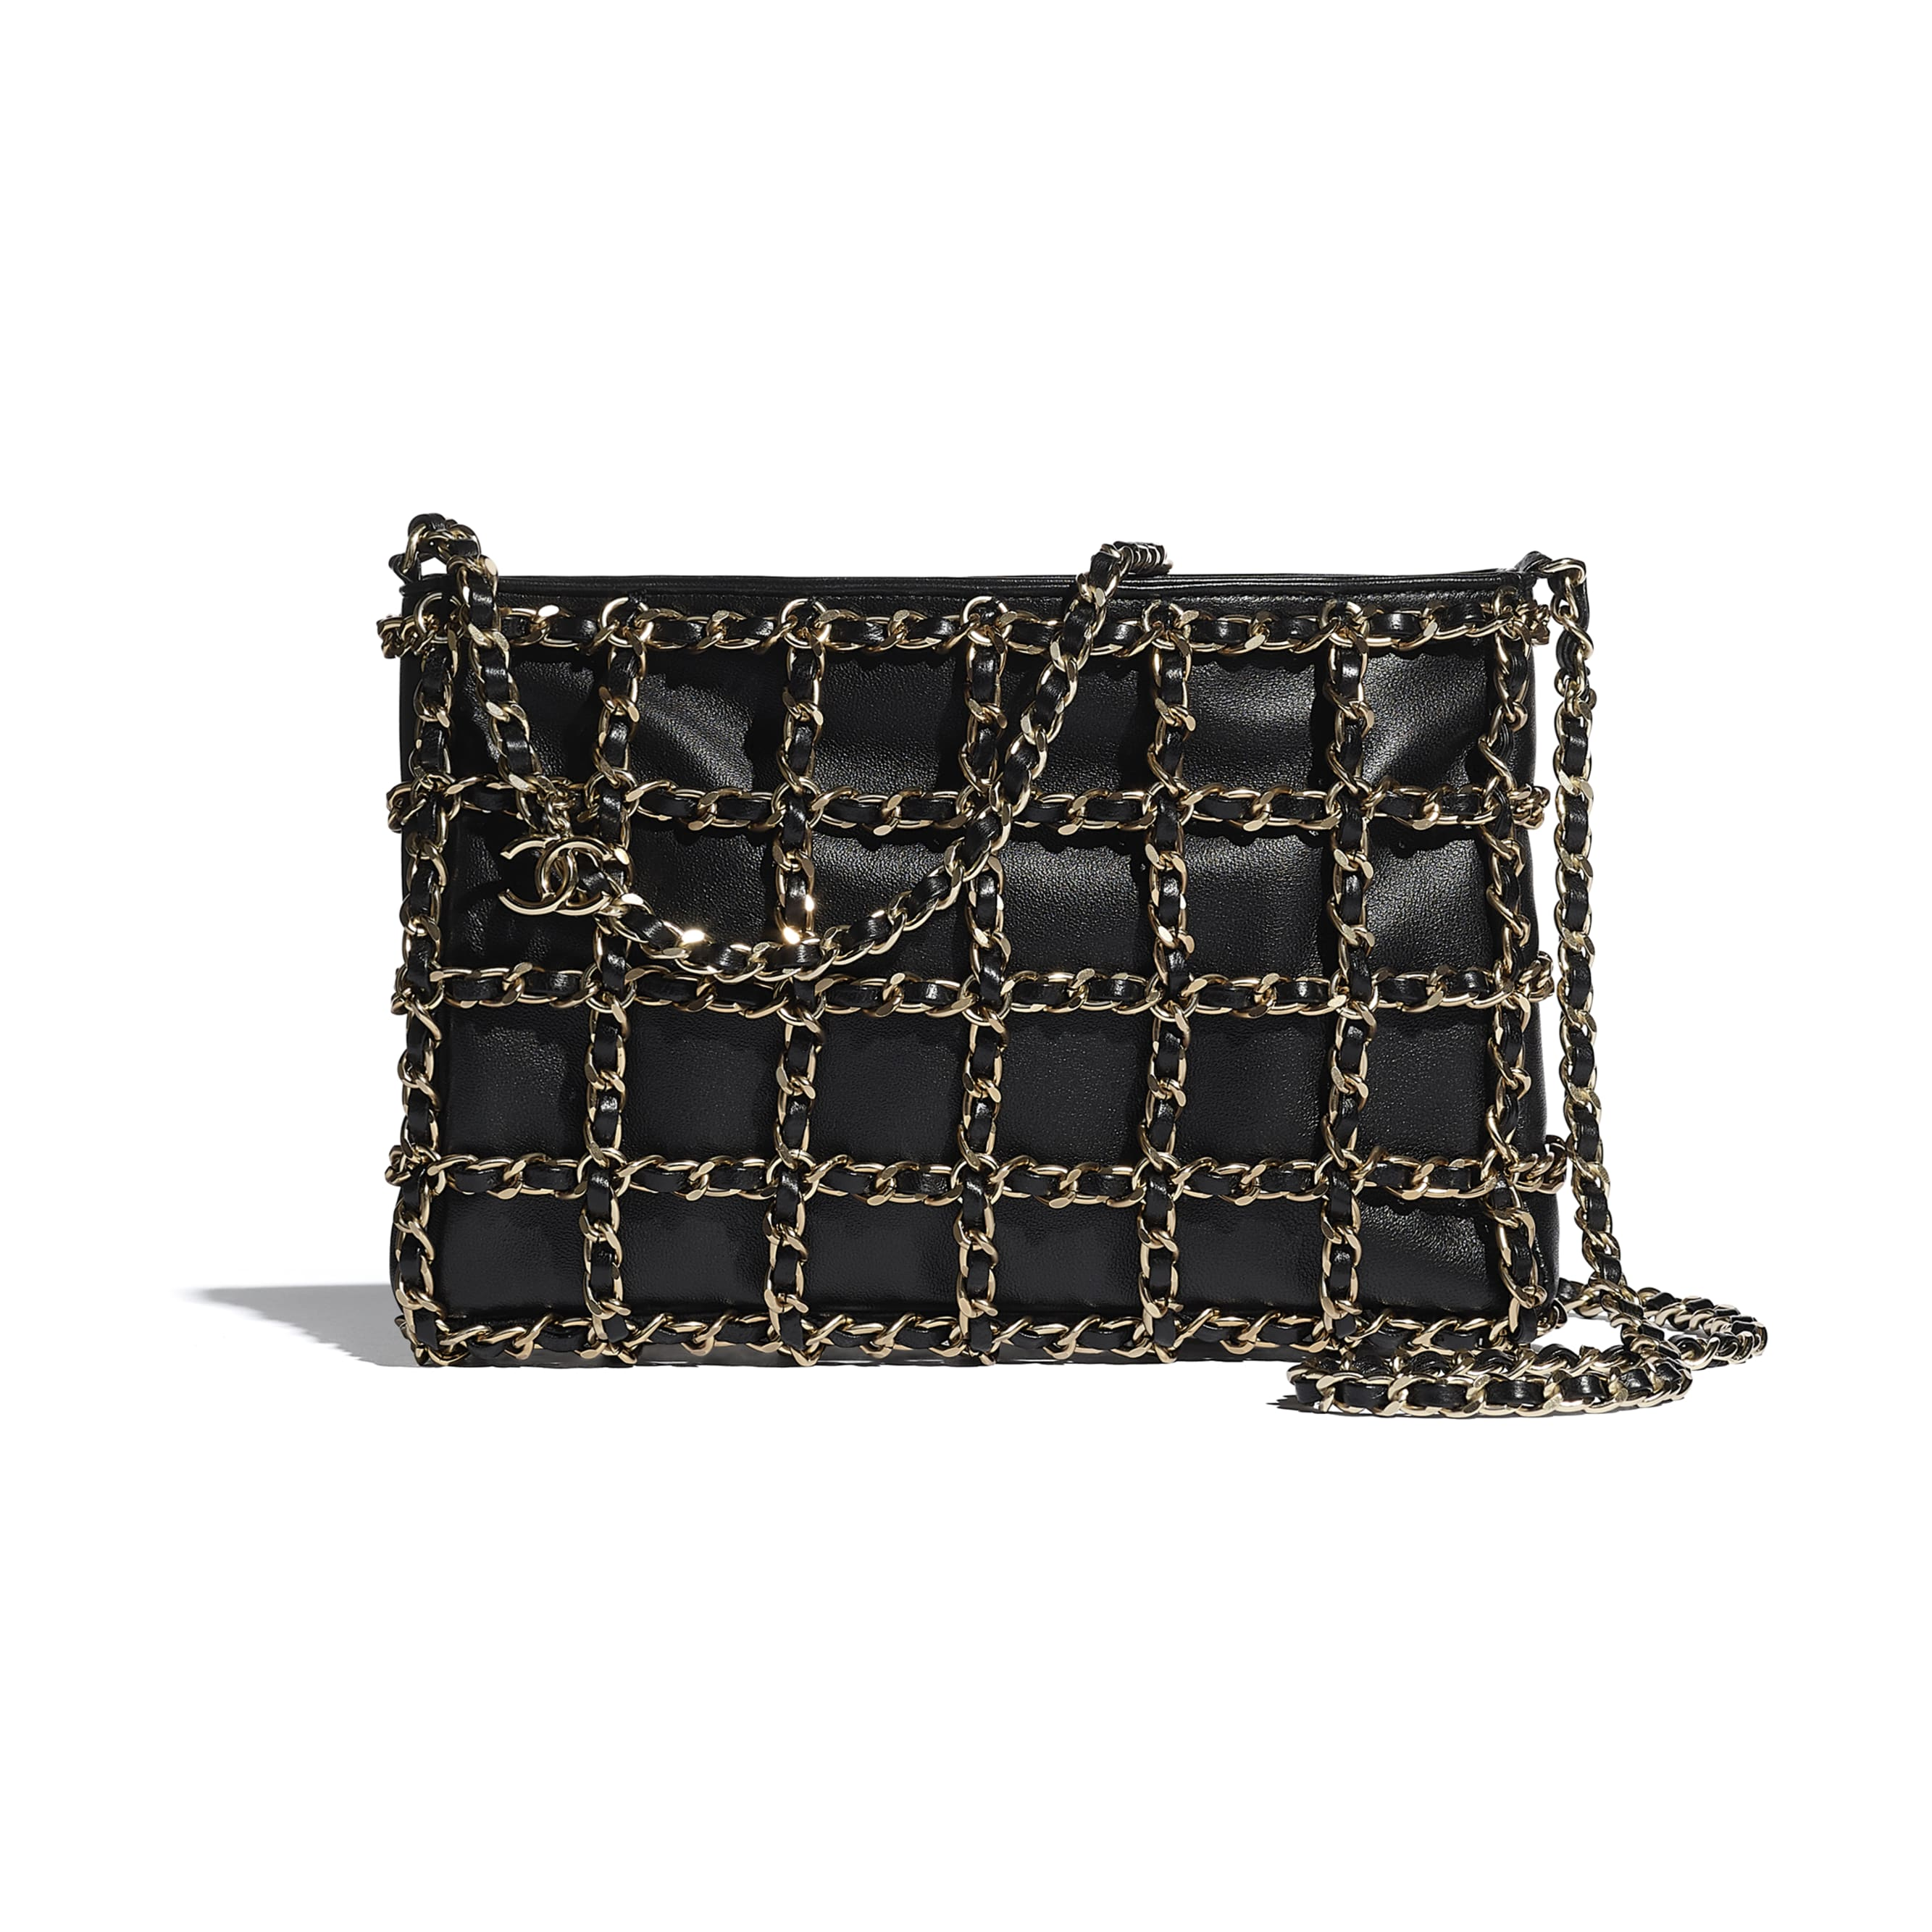 Clutch - Black - Lambskin & Gold Metal  - CHANEL - Default view - see standard sized version